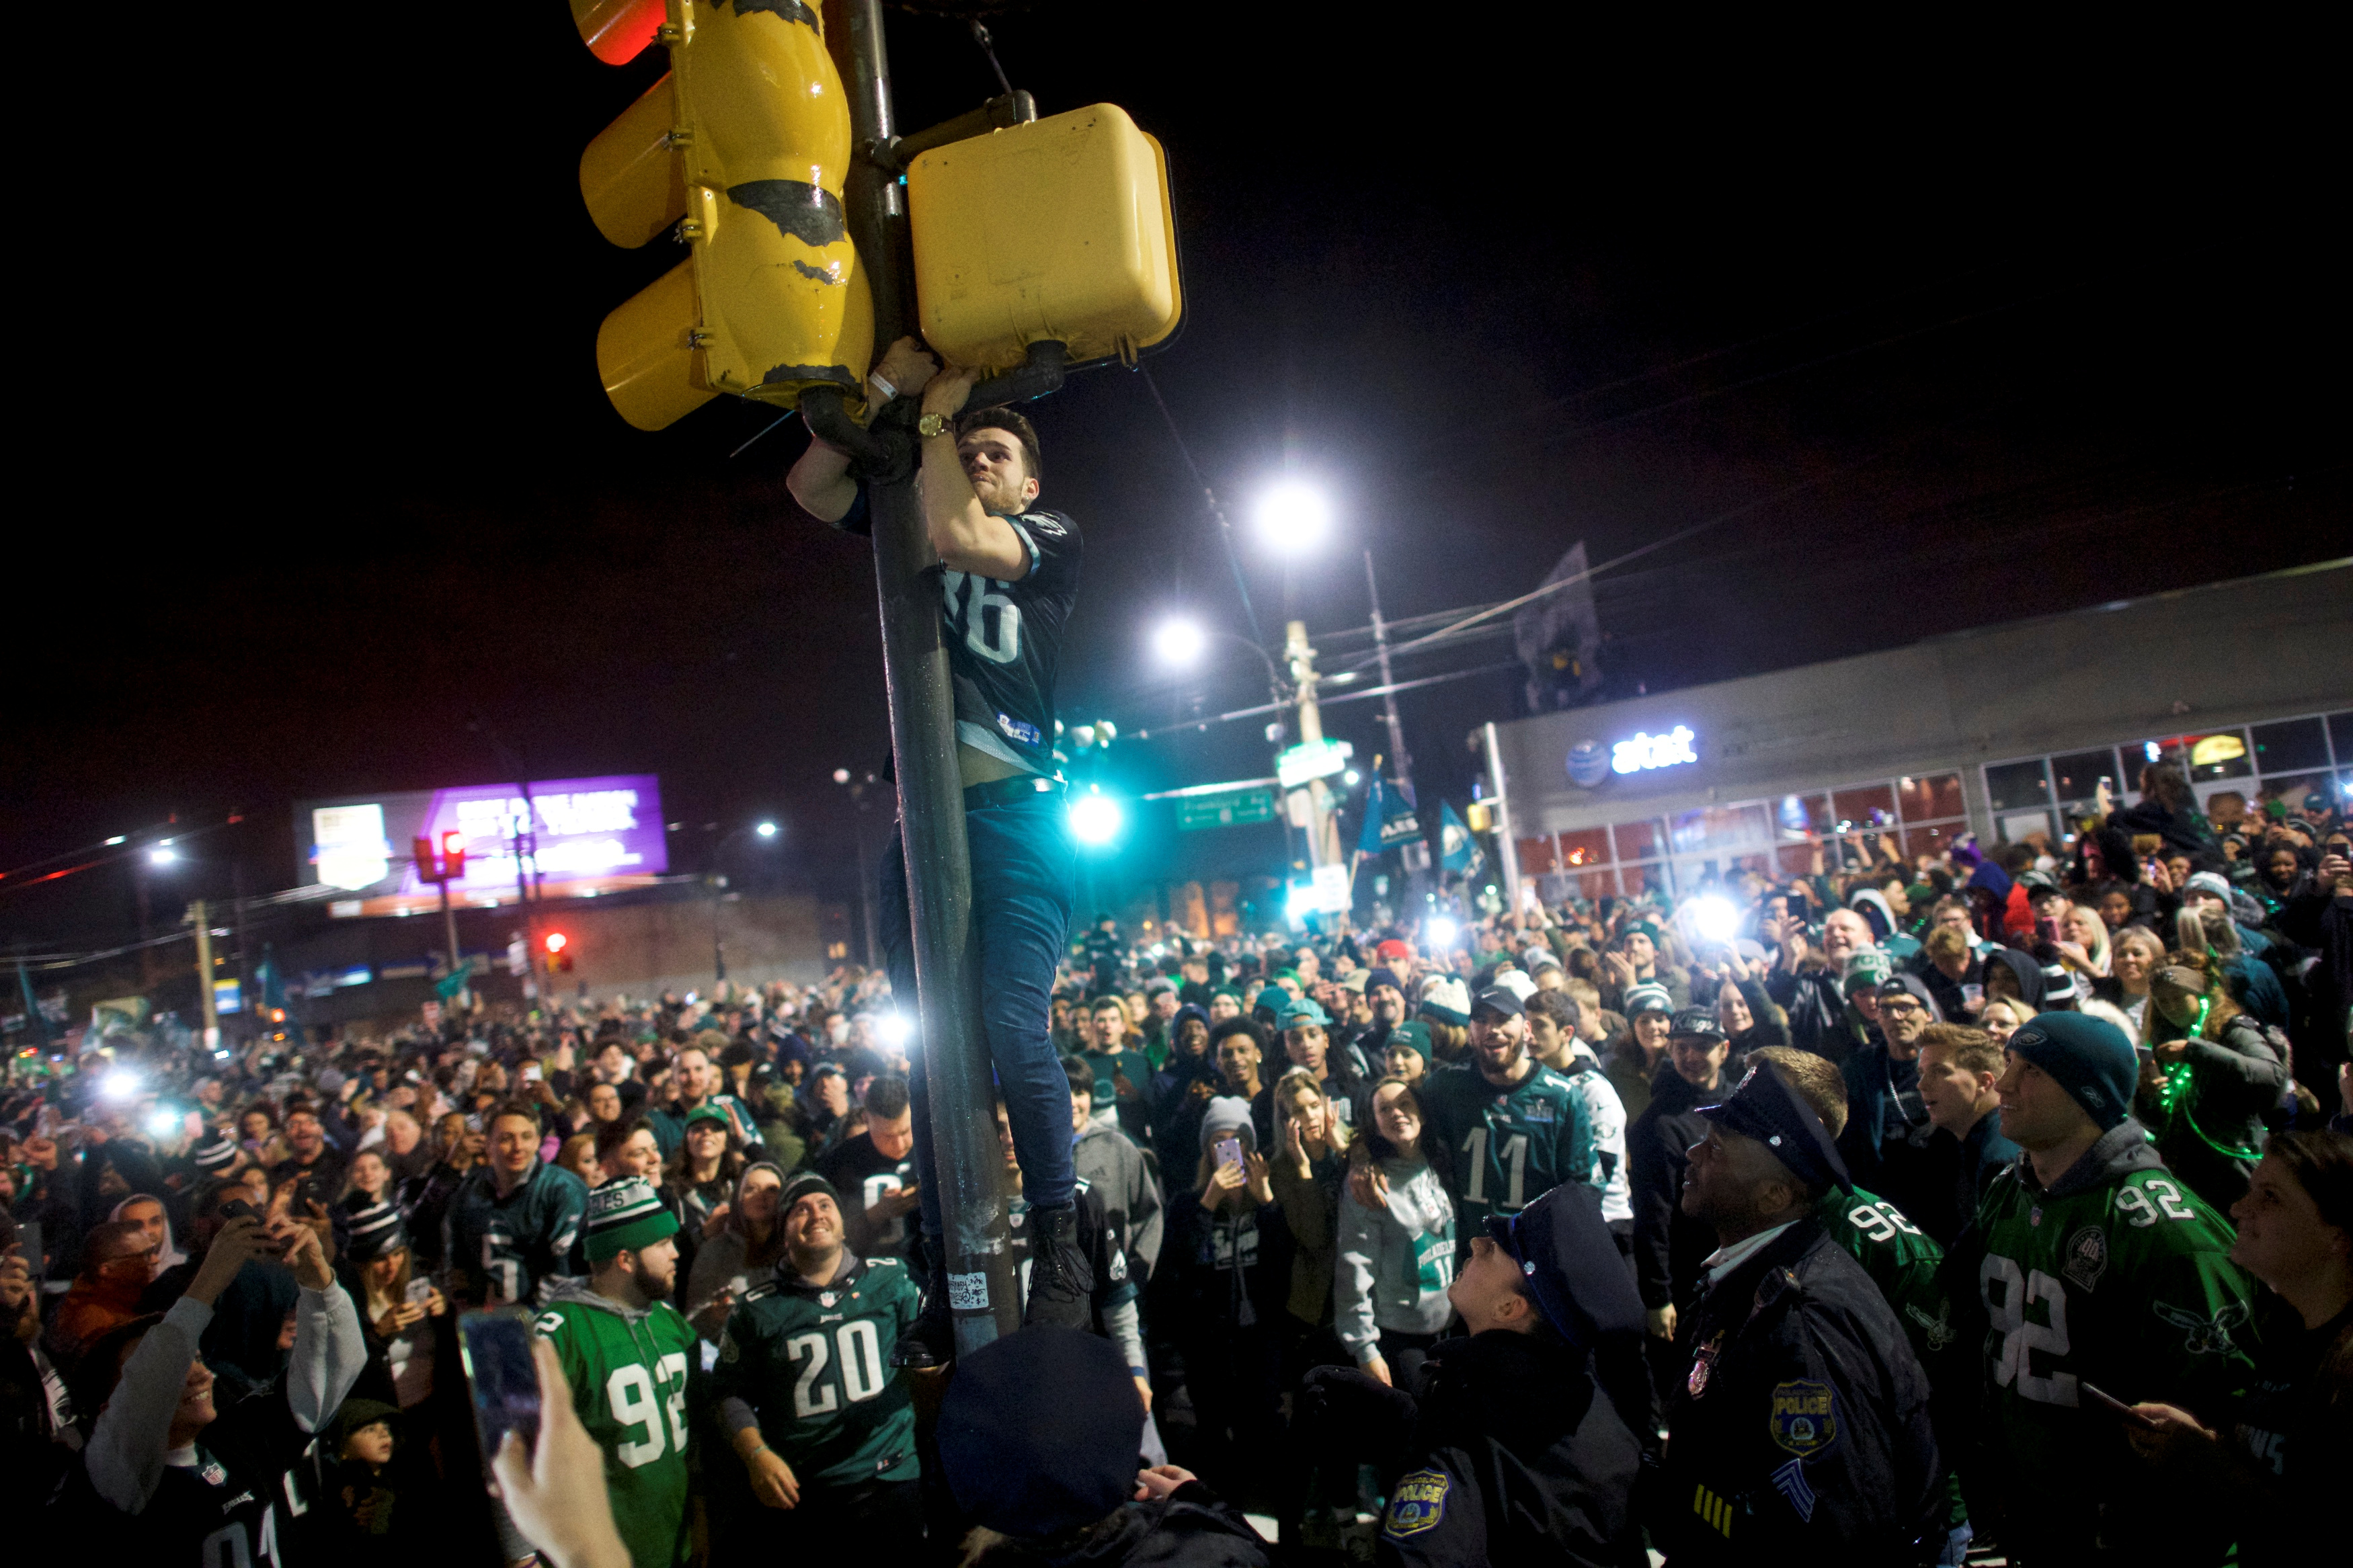 Fans celebrate the Philadelphia Superbowl LII victory over the New England Patriots in Philadelphia, Pennsylvania U.S. February 4, 2018.